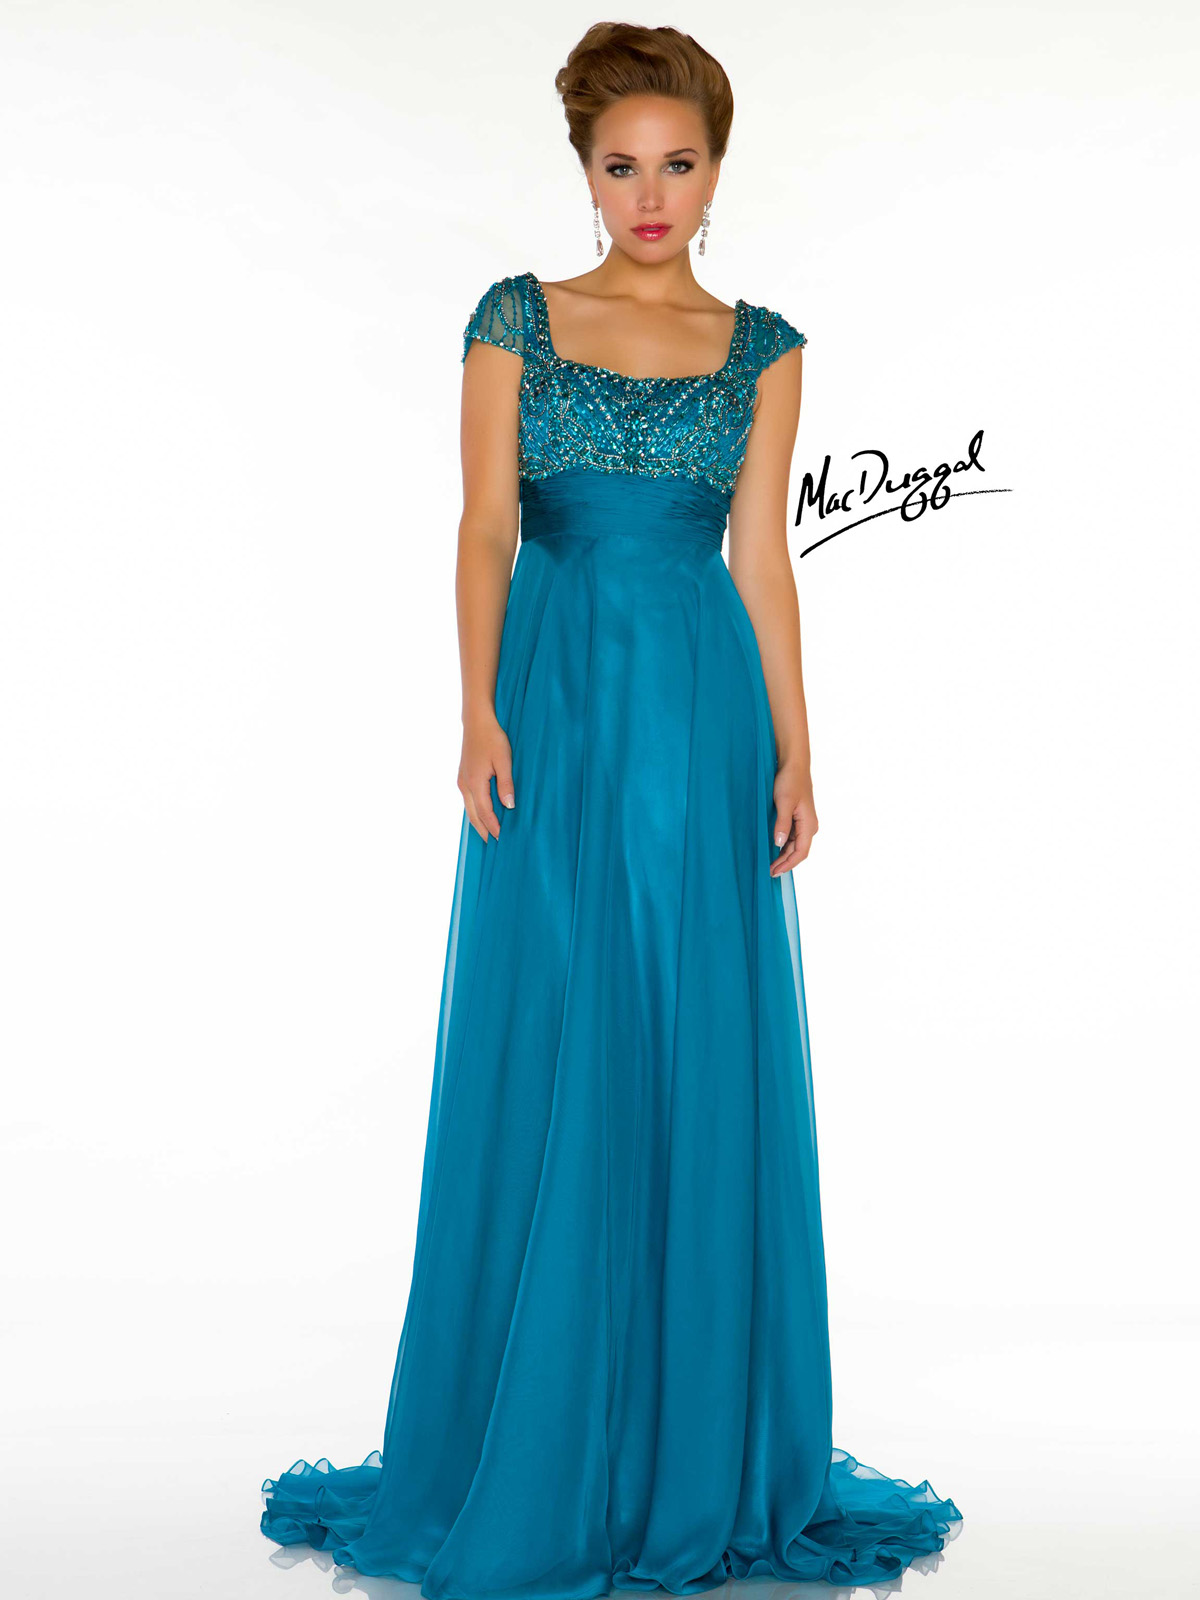 Empire Waist Cocktail Dresses With Sleeves - Prom Stores